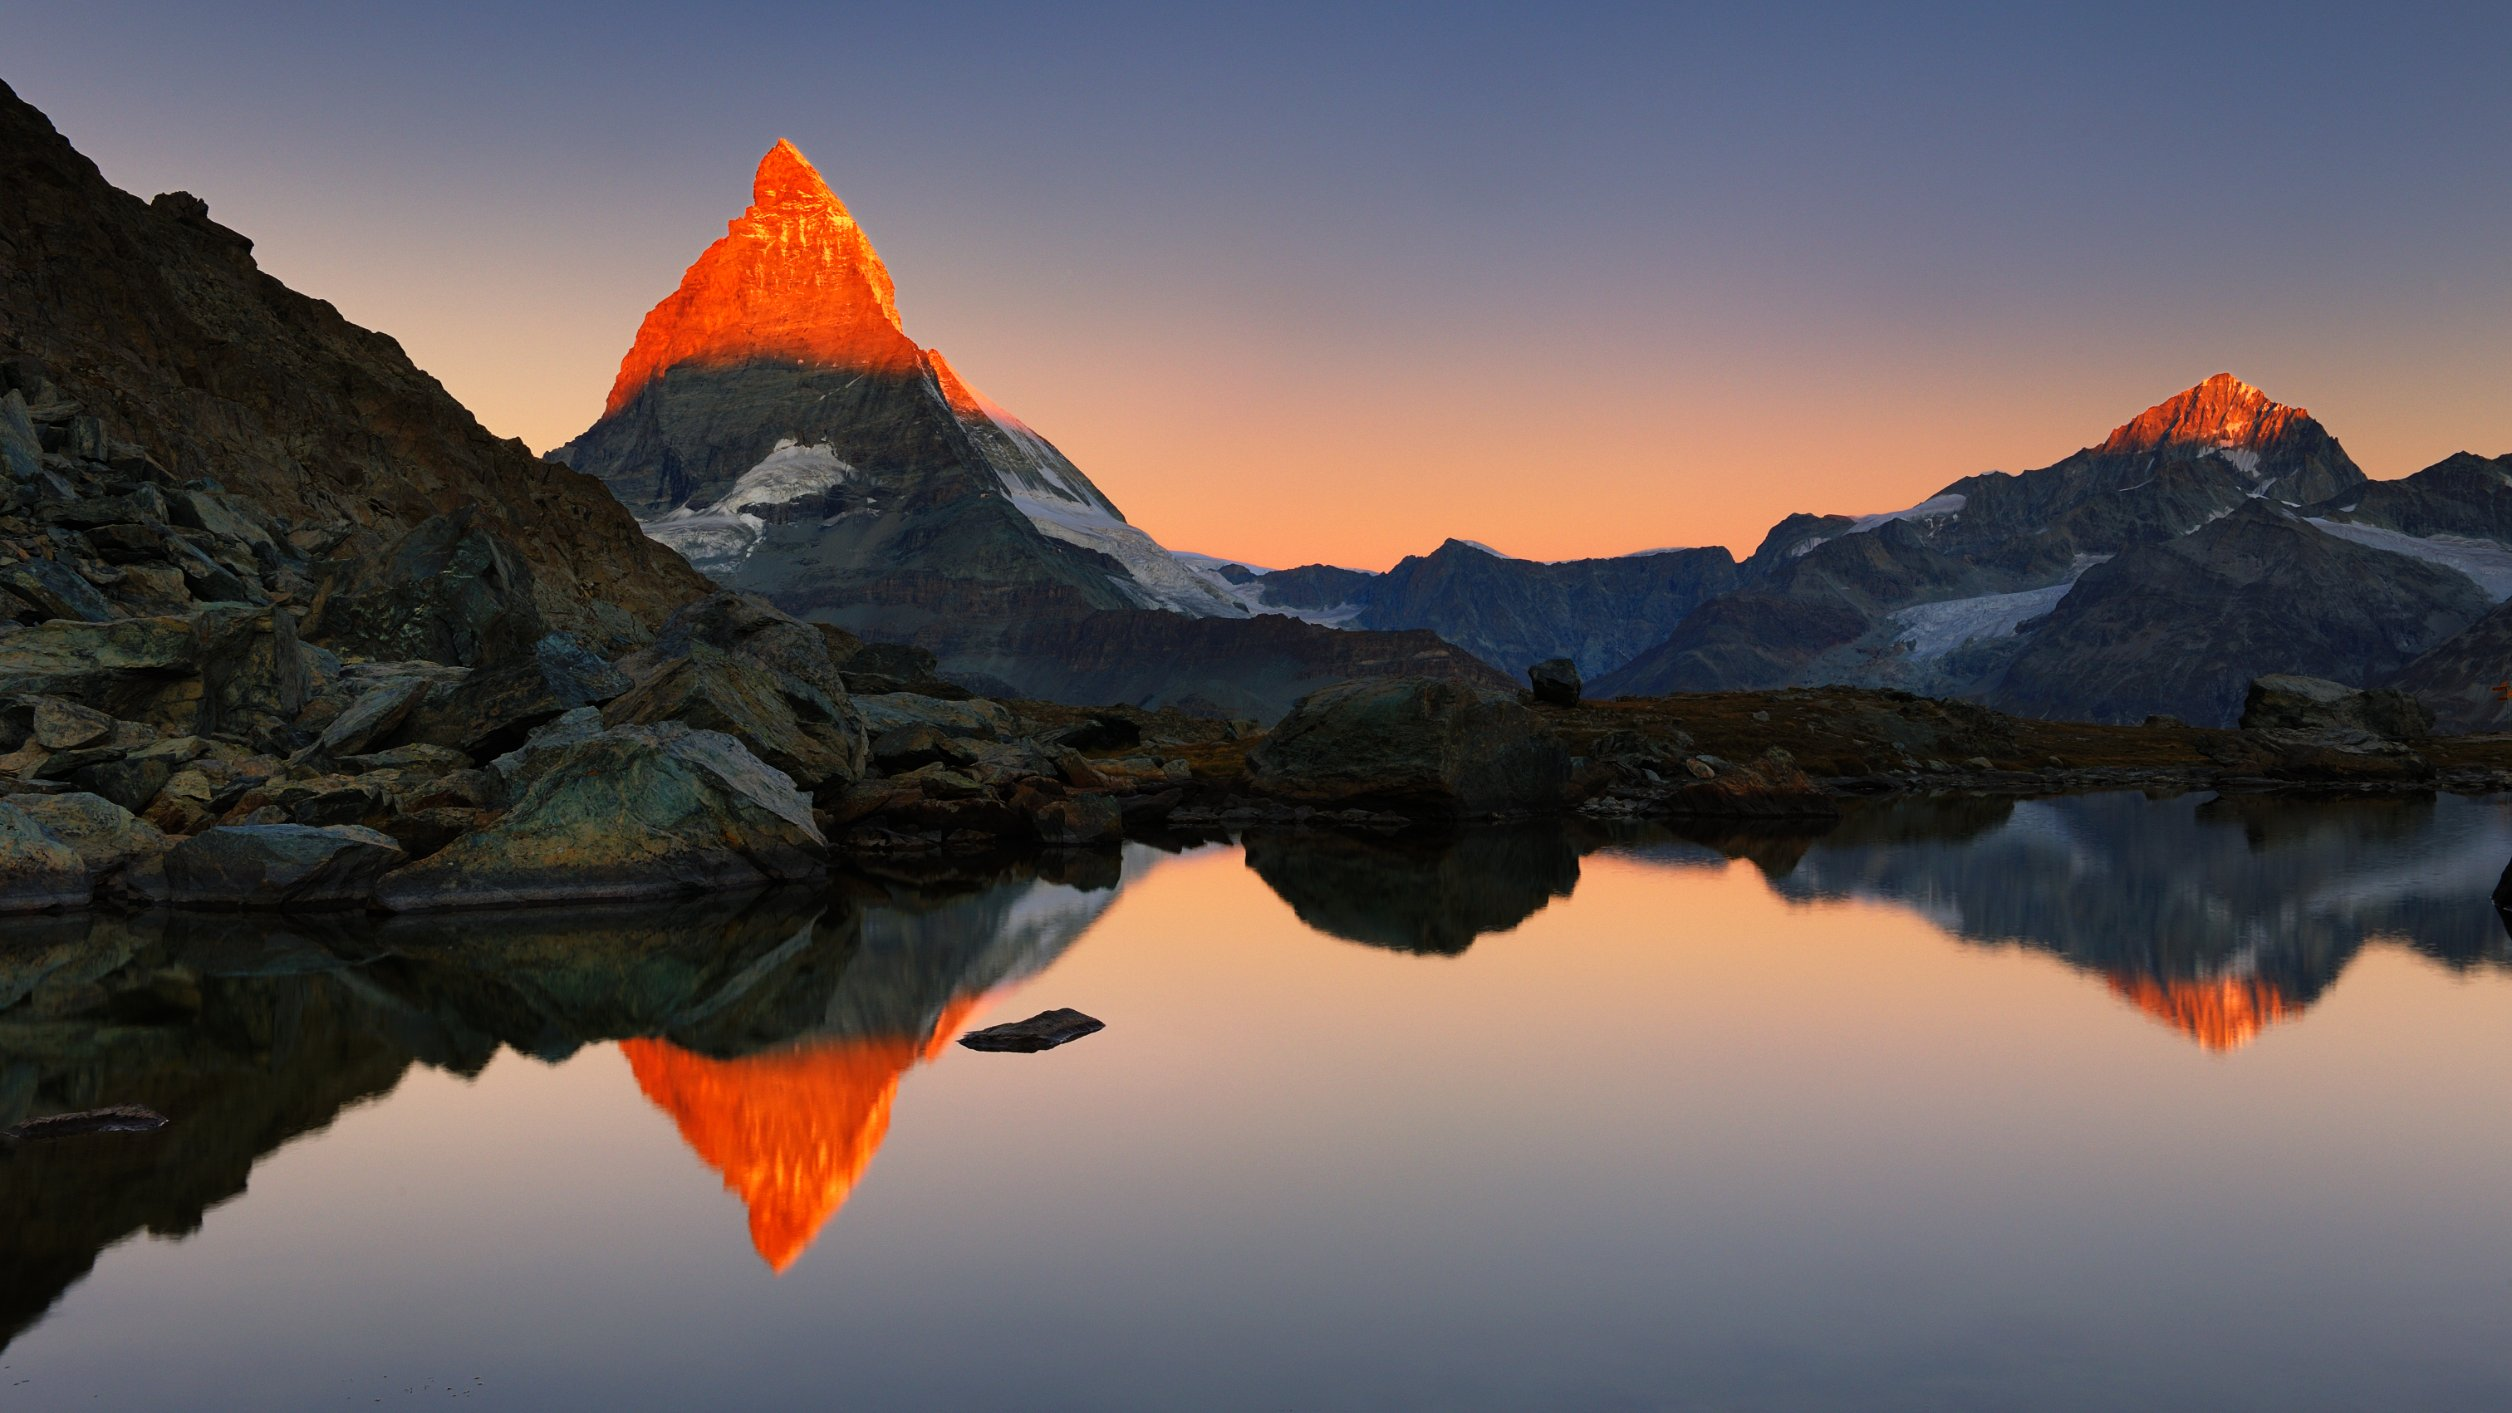 12 iconic mountains -- from Mount Fuji to the Matterhorn   CNN Travel